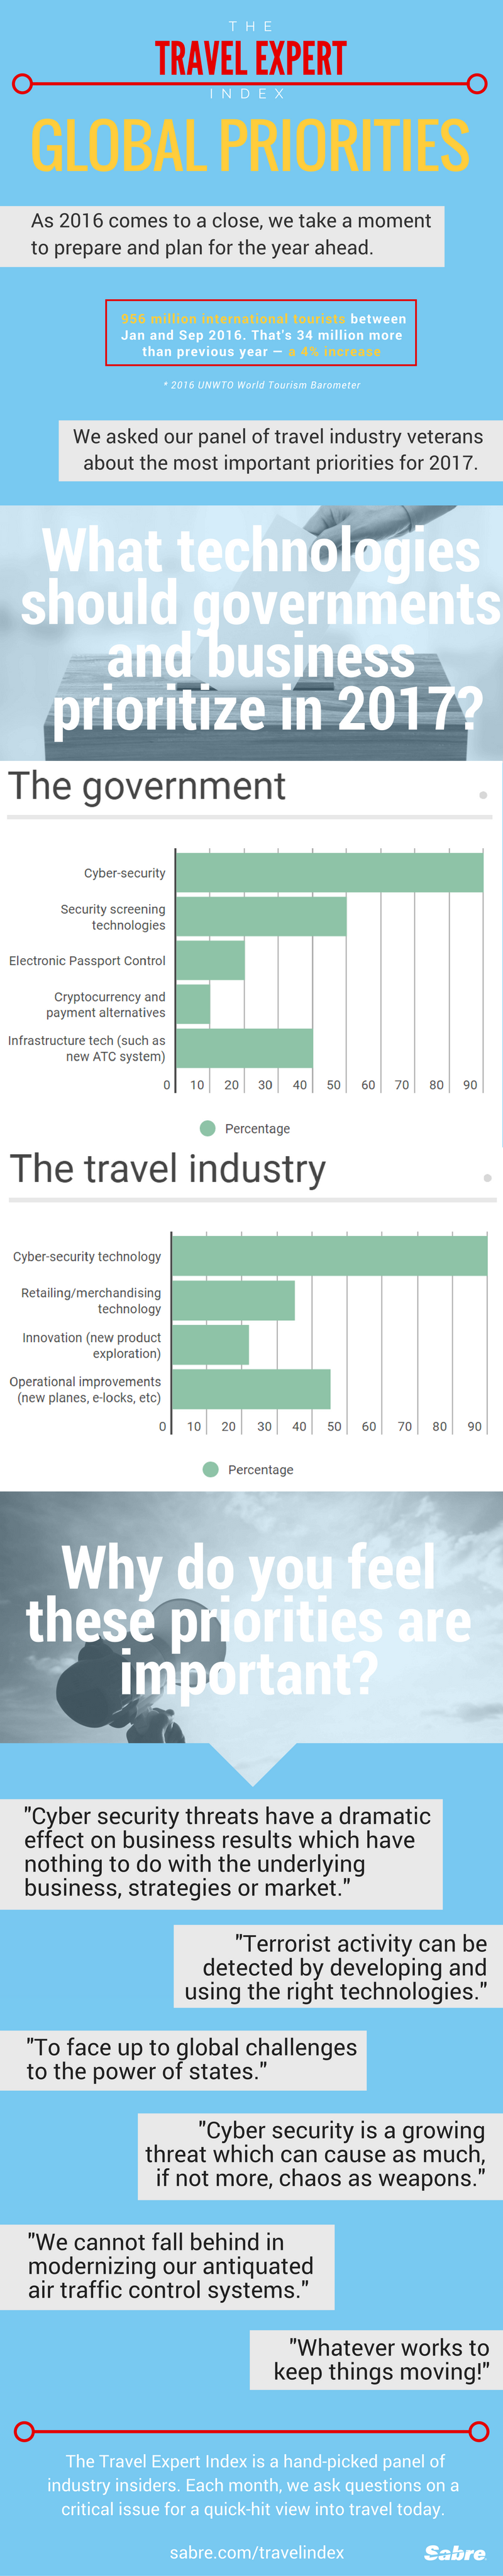 Global Travel Priorities 2017 Infographic